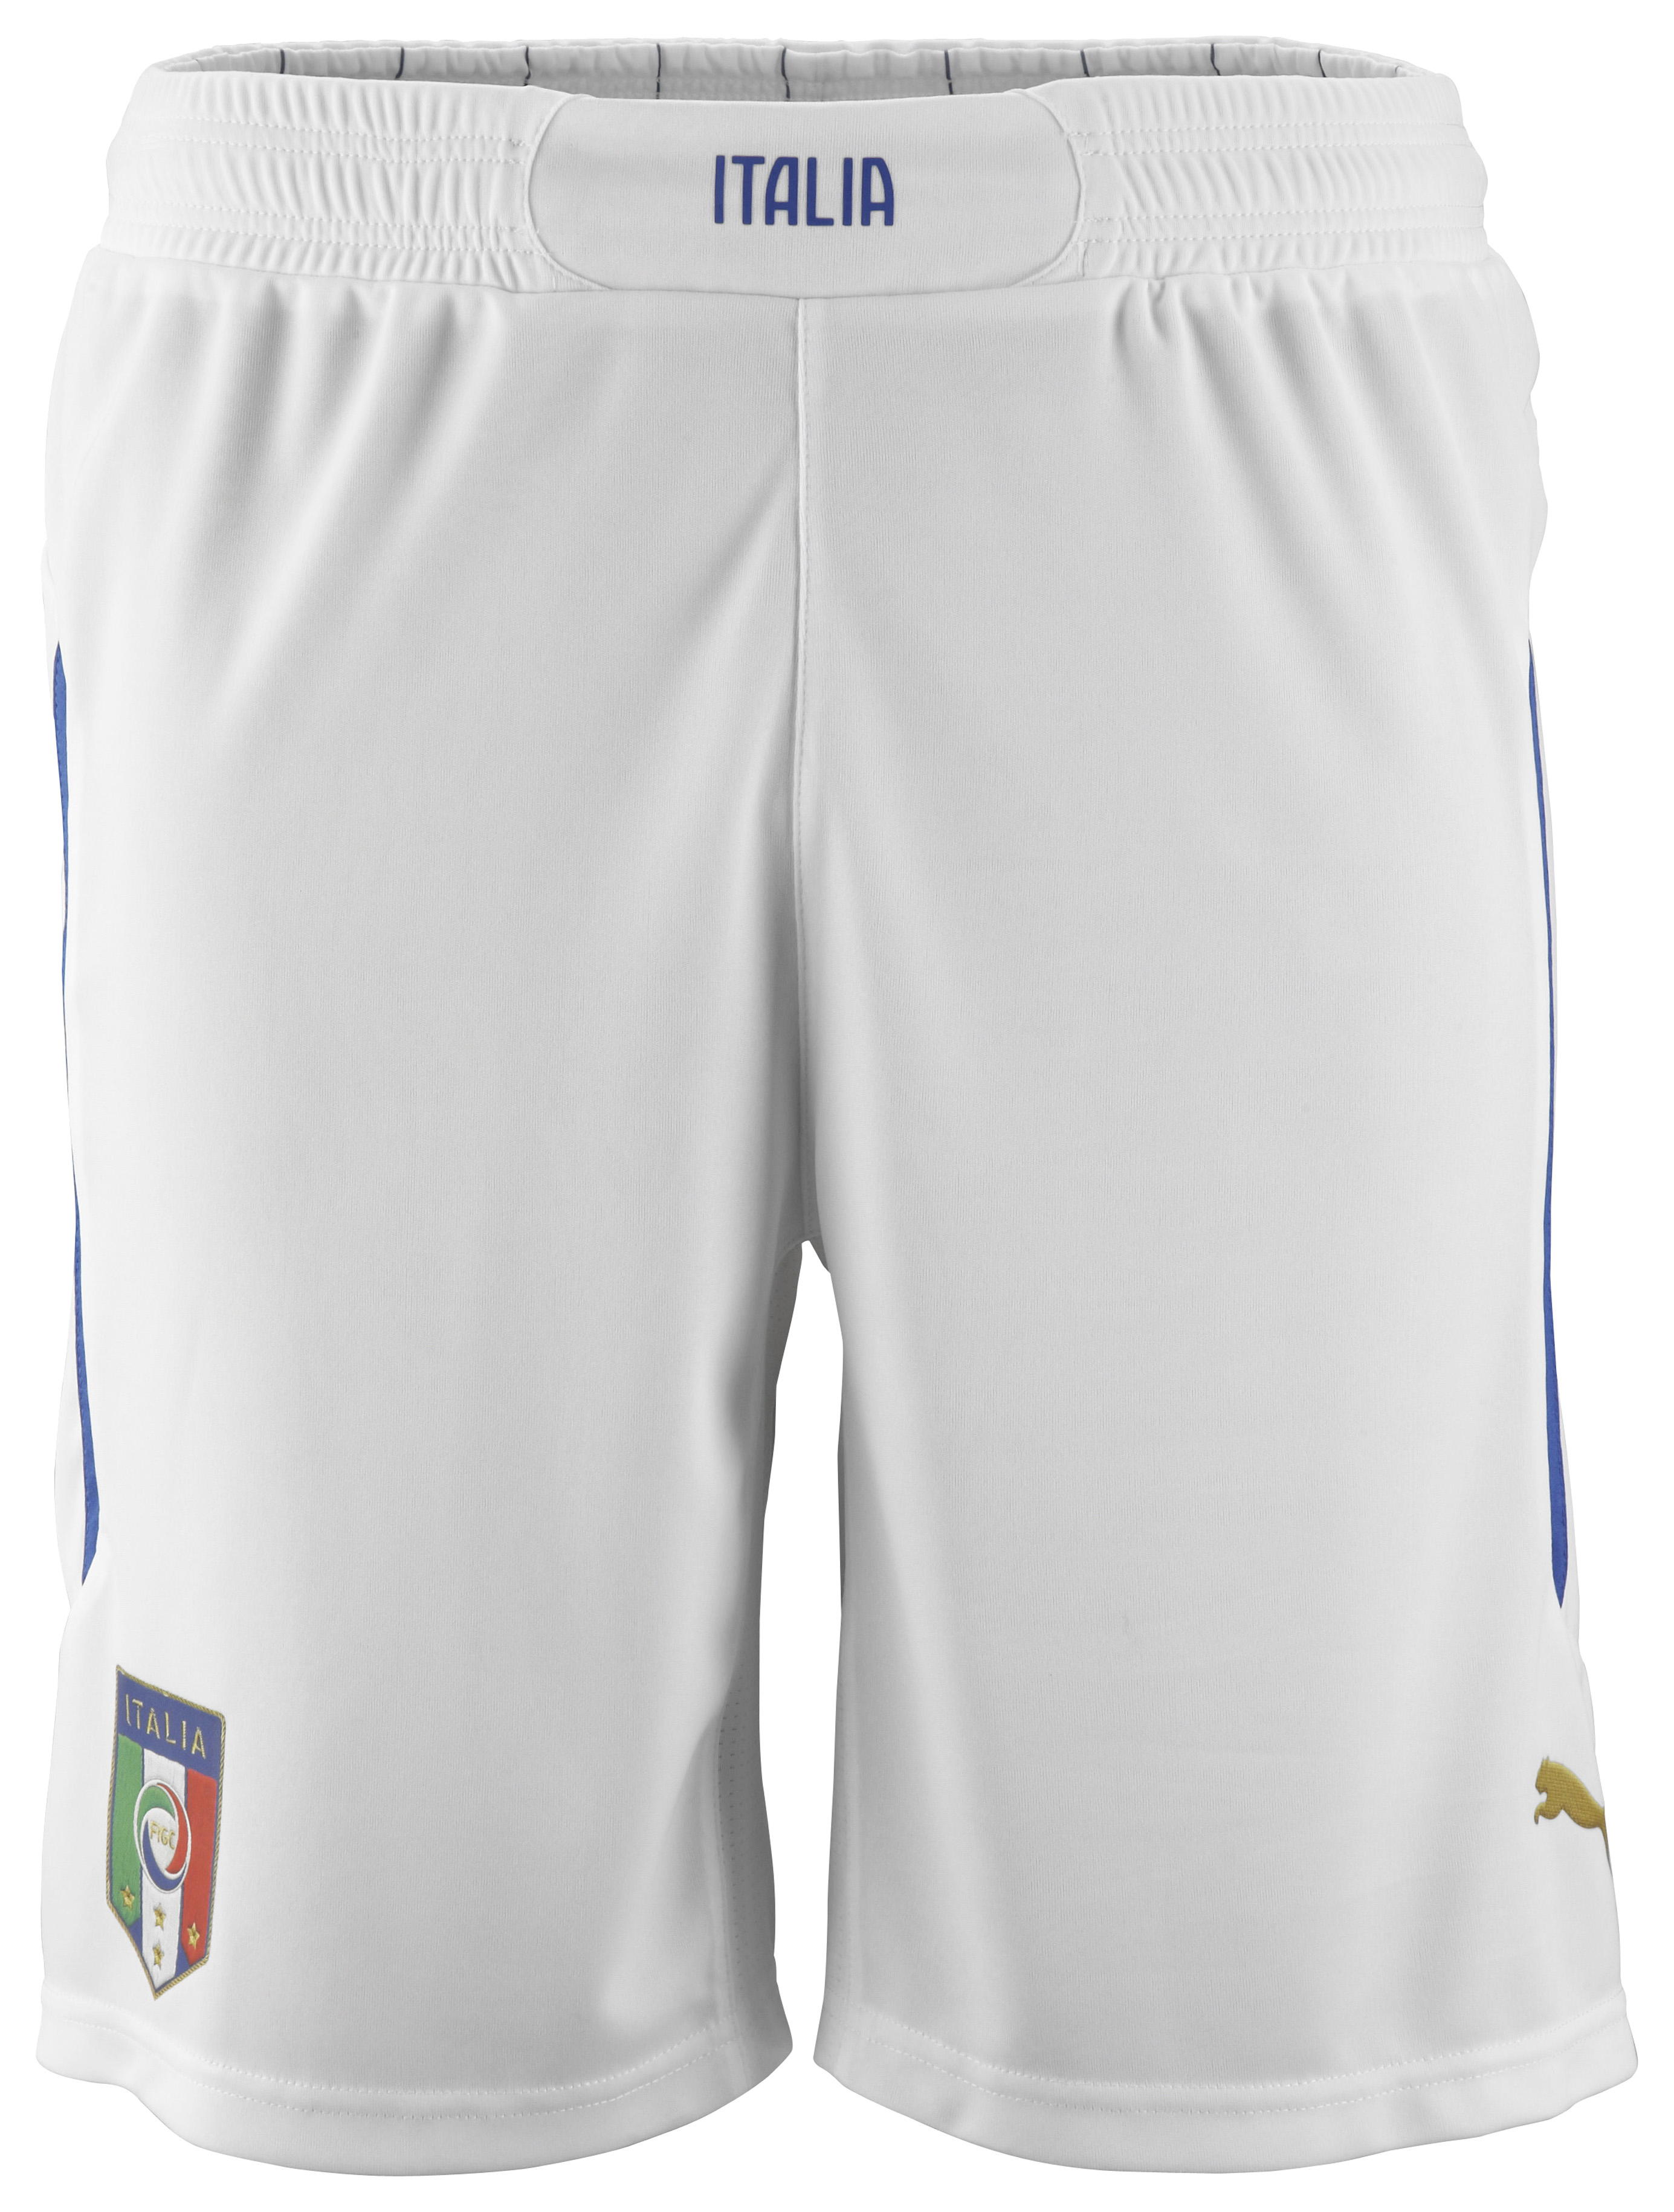 SS14 Italy Home FIGC Promo Shorts_744238_02